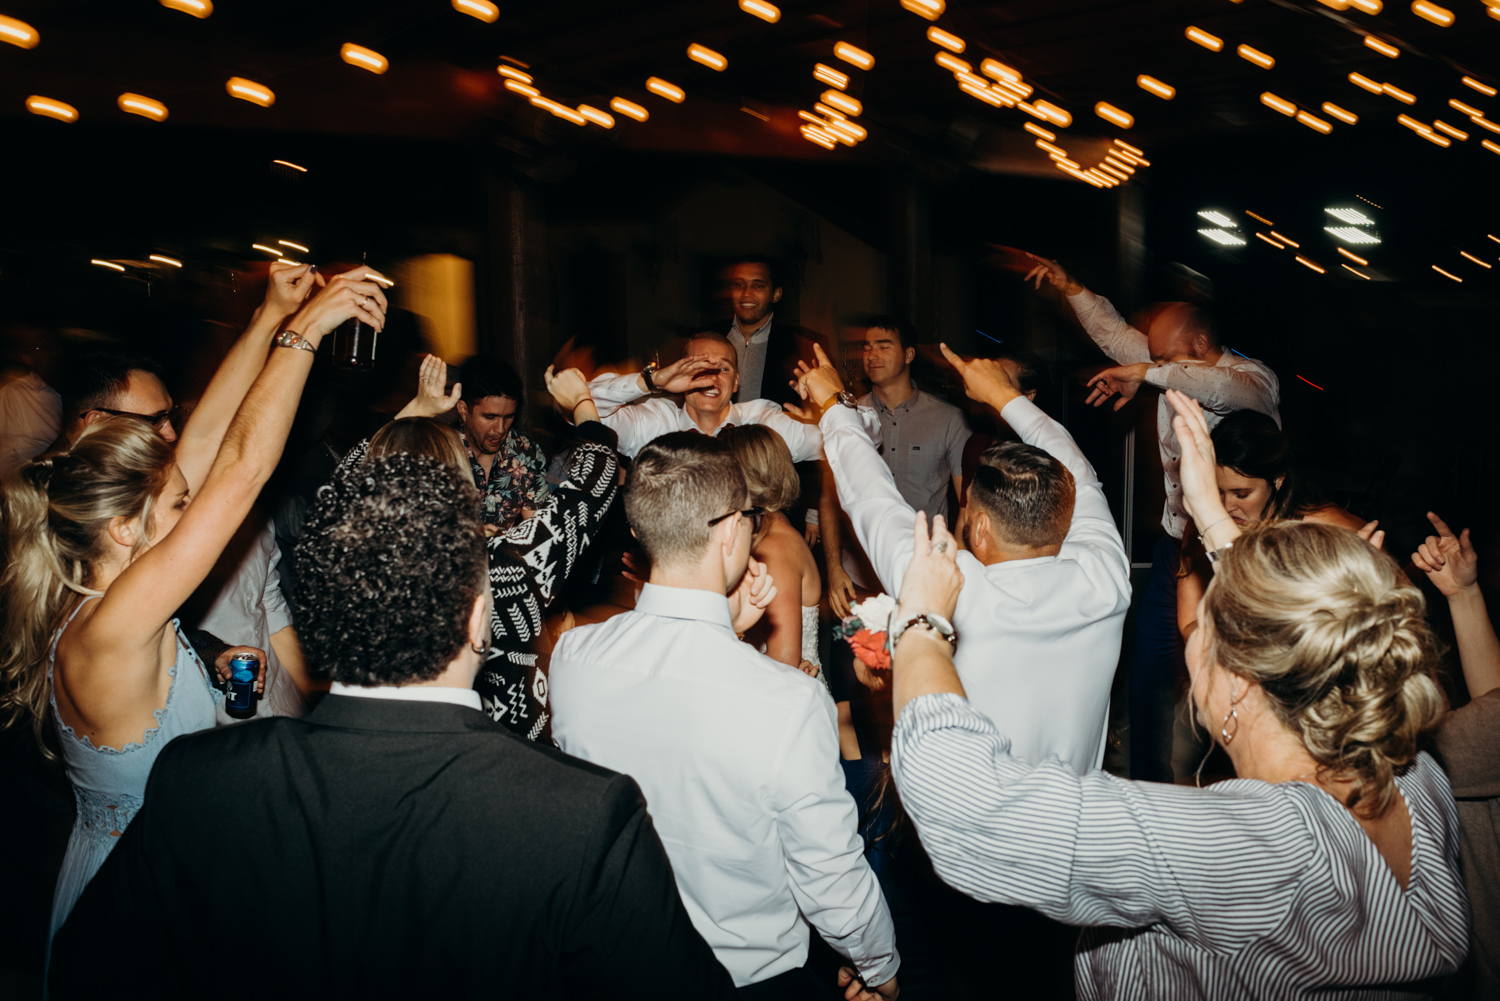 Photographed a full dance floor where all the guests were jumping during the reception in Arizona.